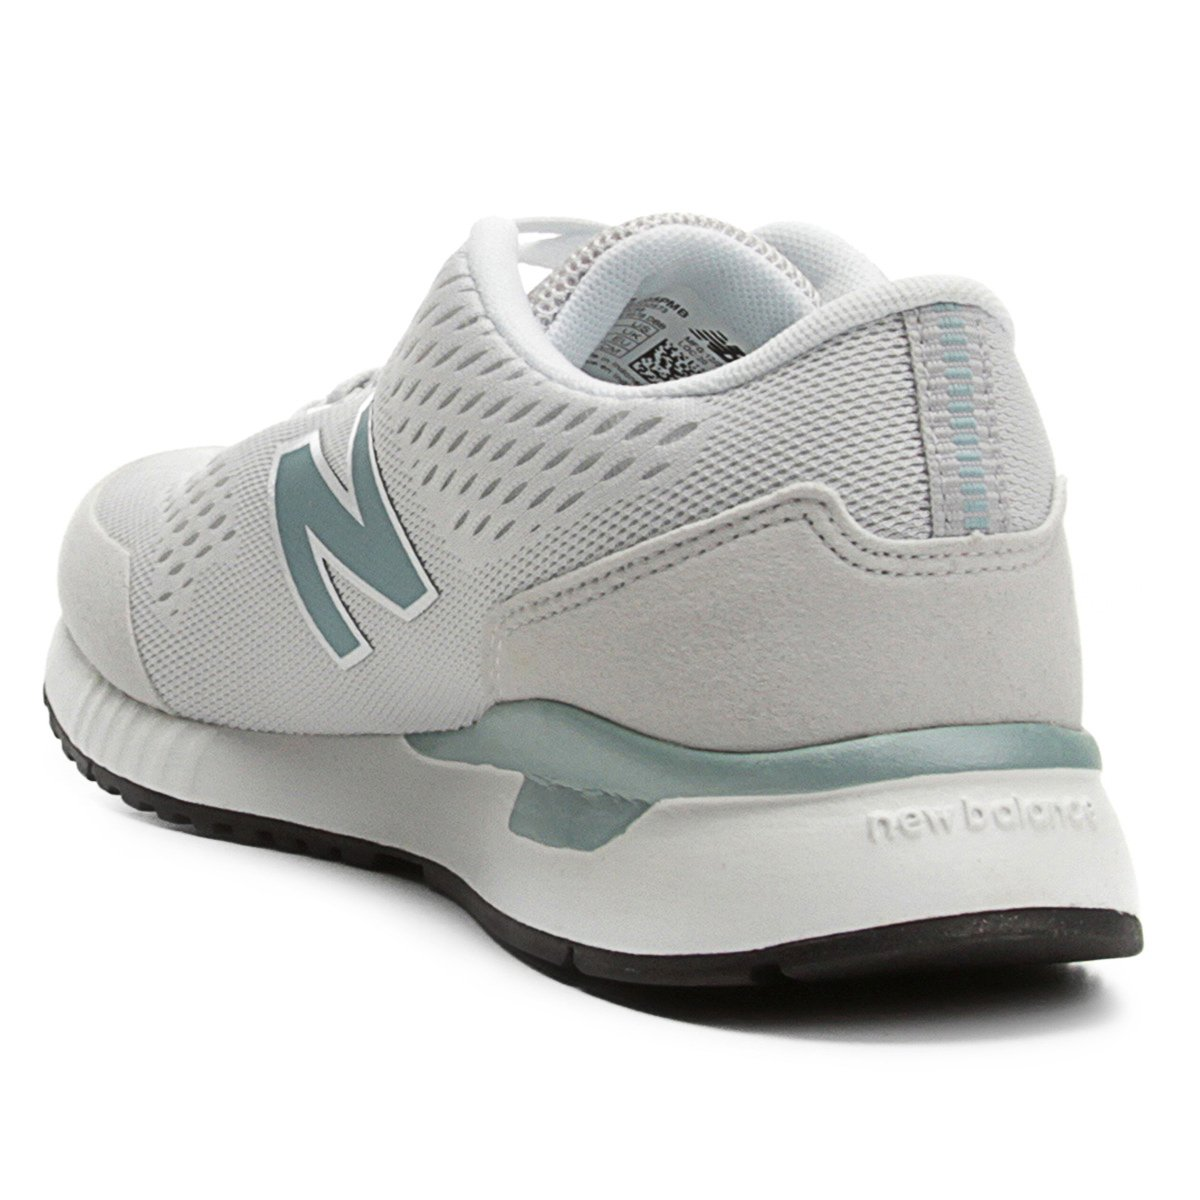 500abfcd900 discount code for tenis new balance 901 becf0 acf39